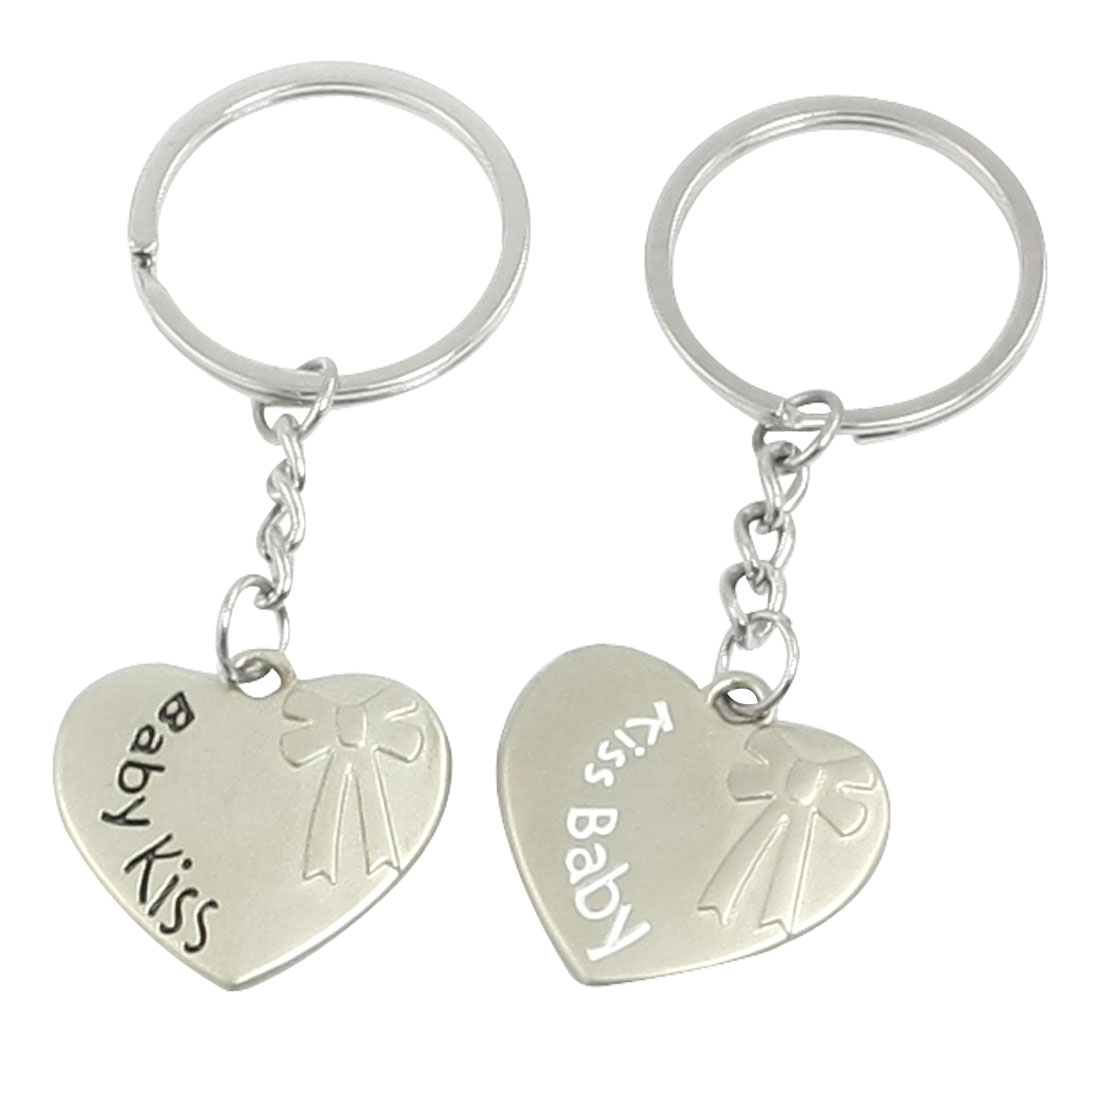 Pair Silver Tone Metal Bowtie Pattern Heart Shape Keychain for Lovers